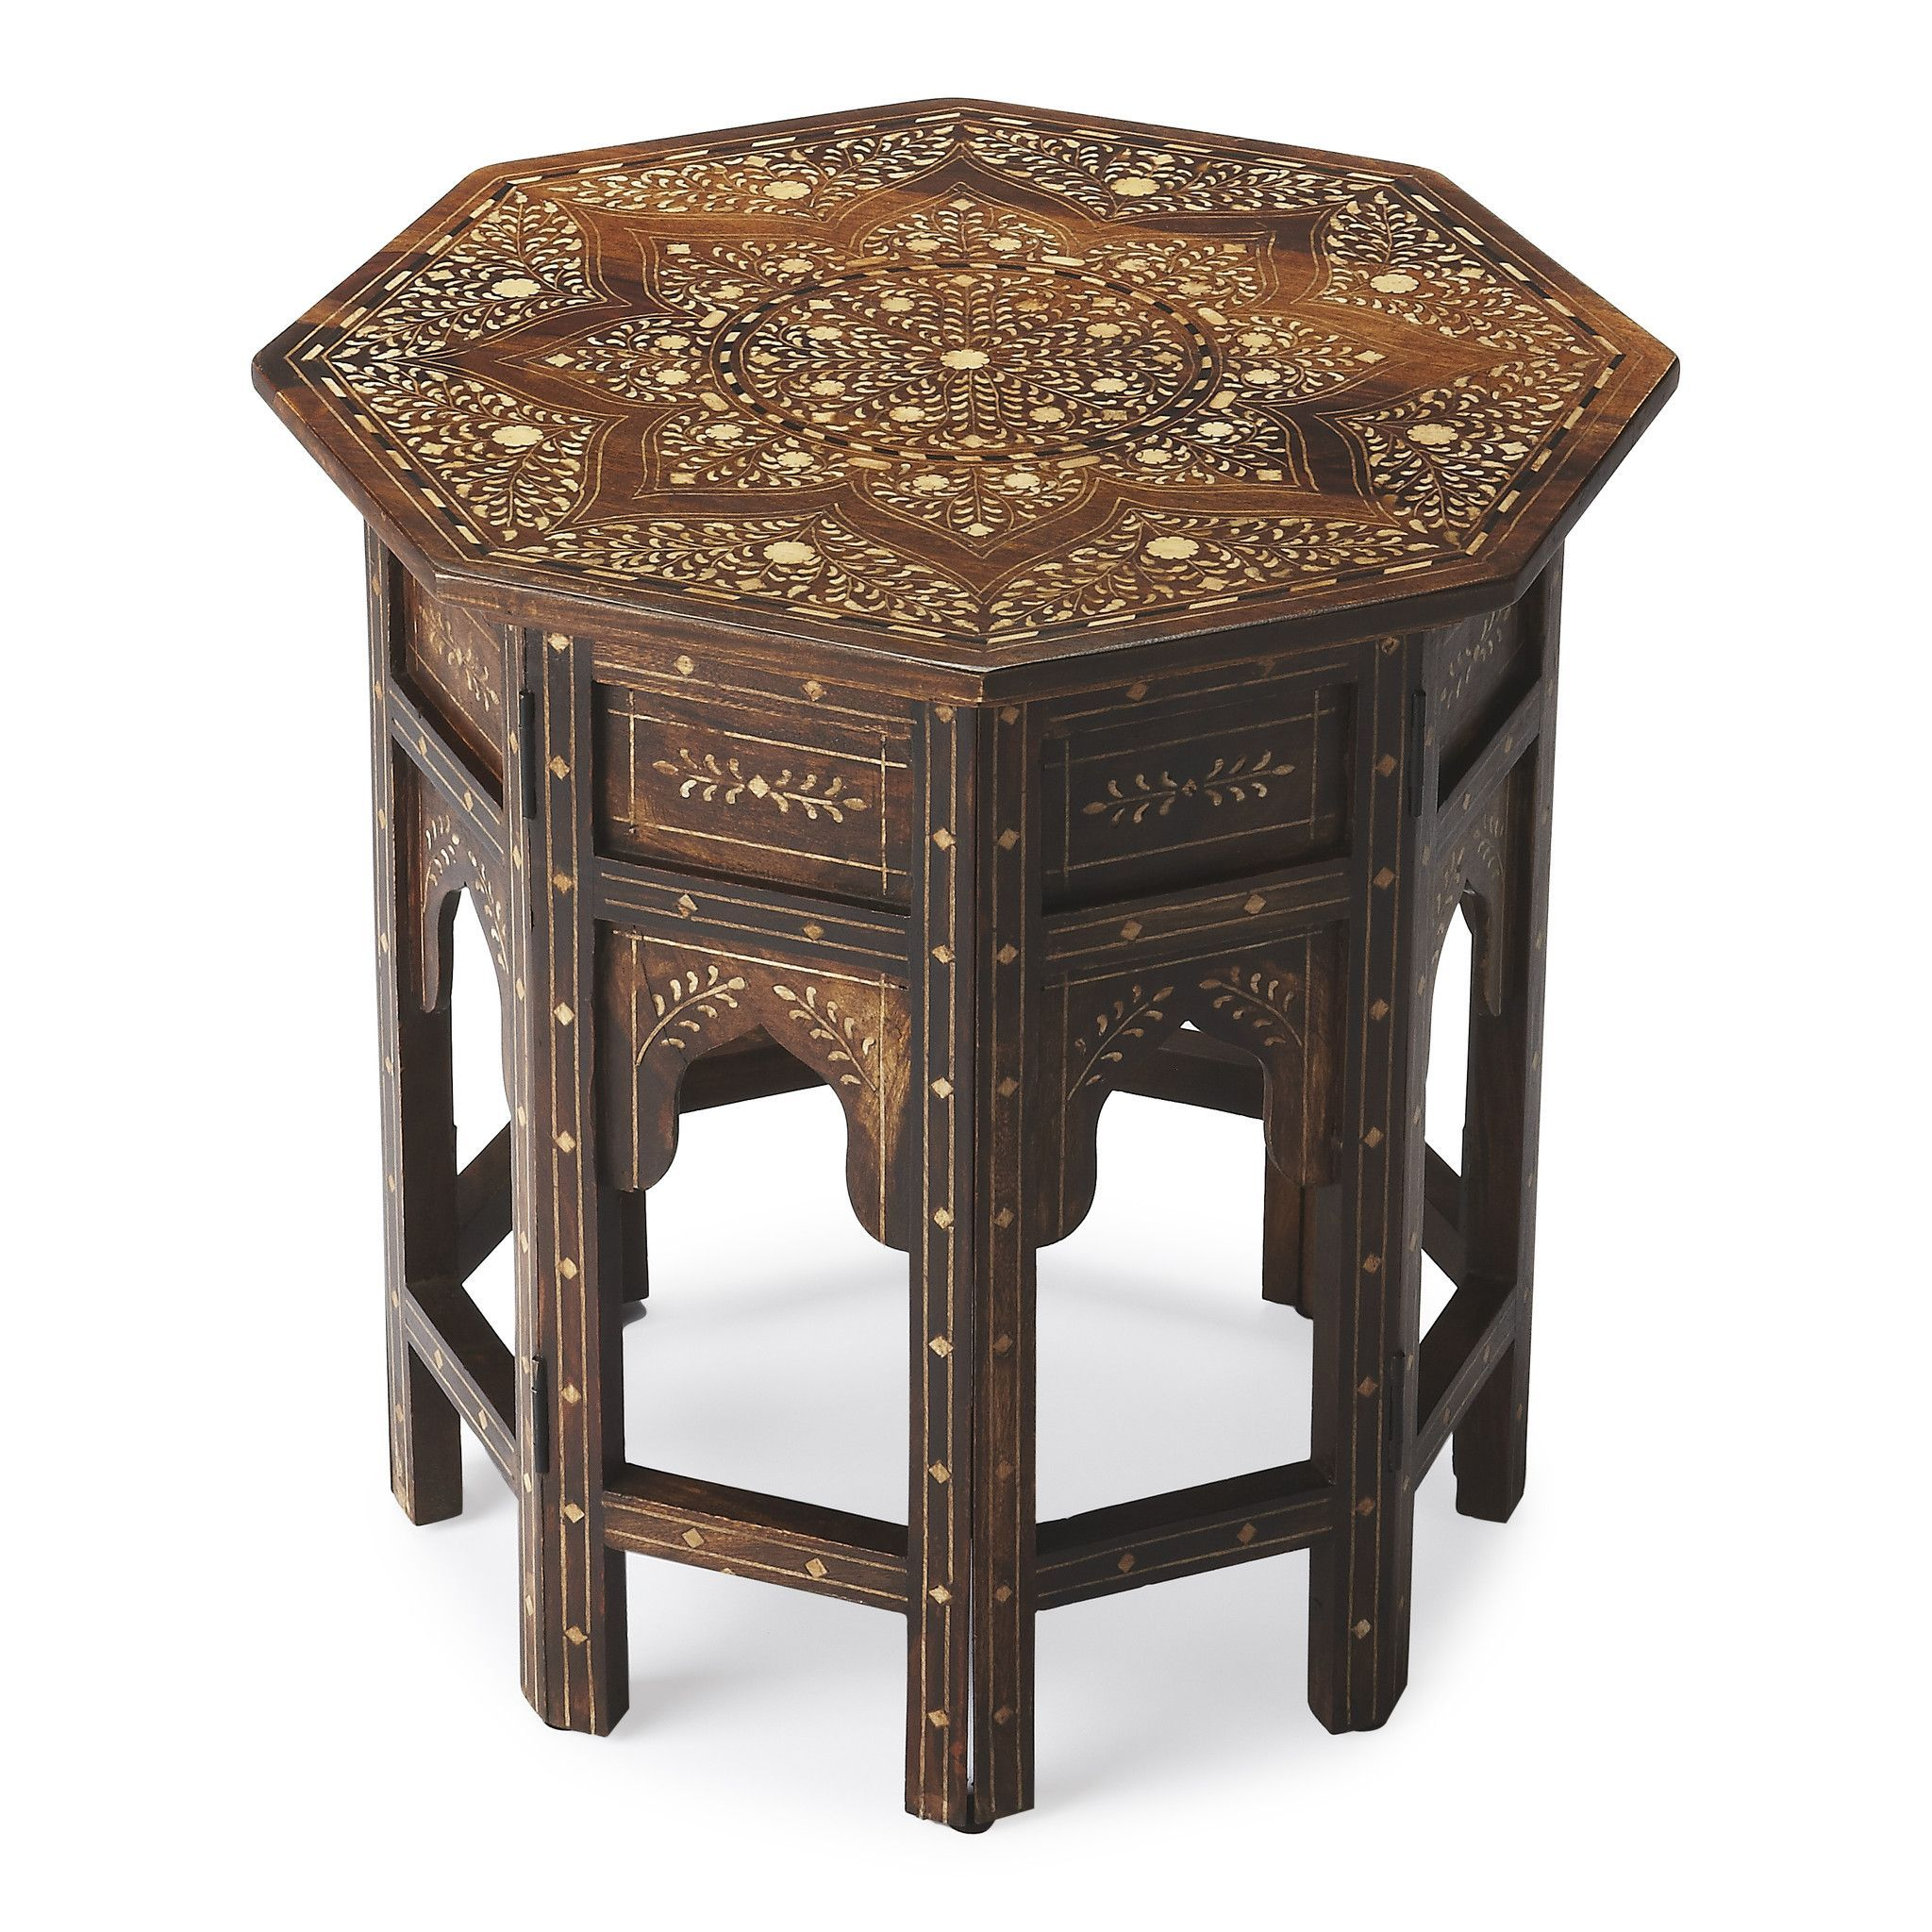 butler wood bone inlay accent table specialty company this distinctive octagonal will stylishly enhance your space featuring finish hand crafted from mango solids home interiors